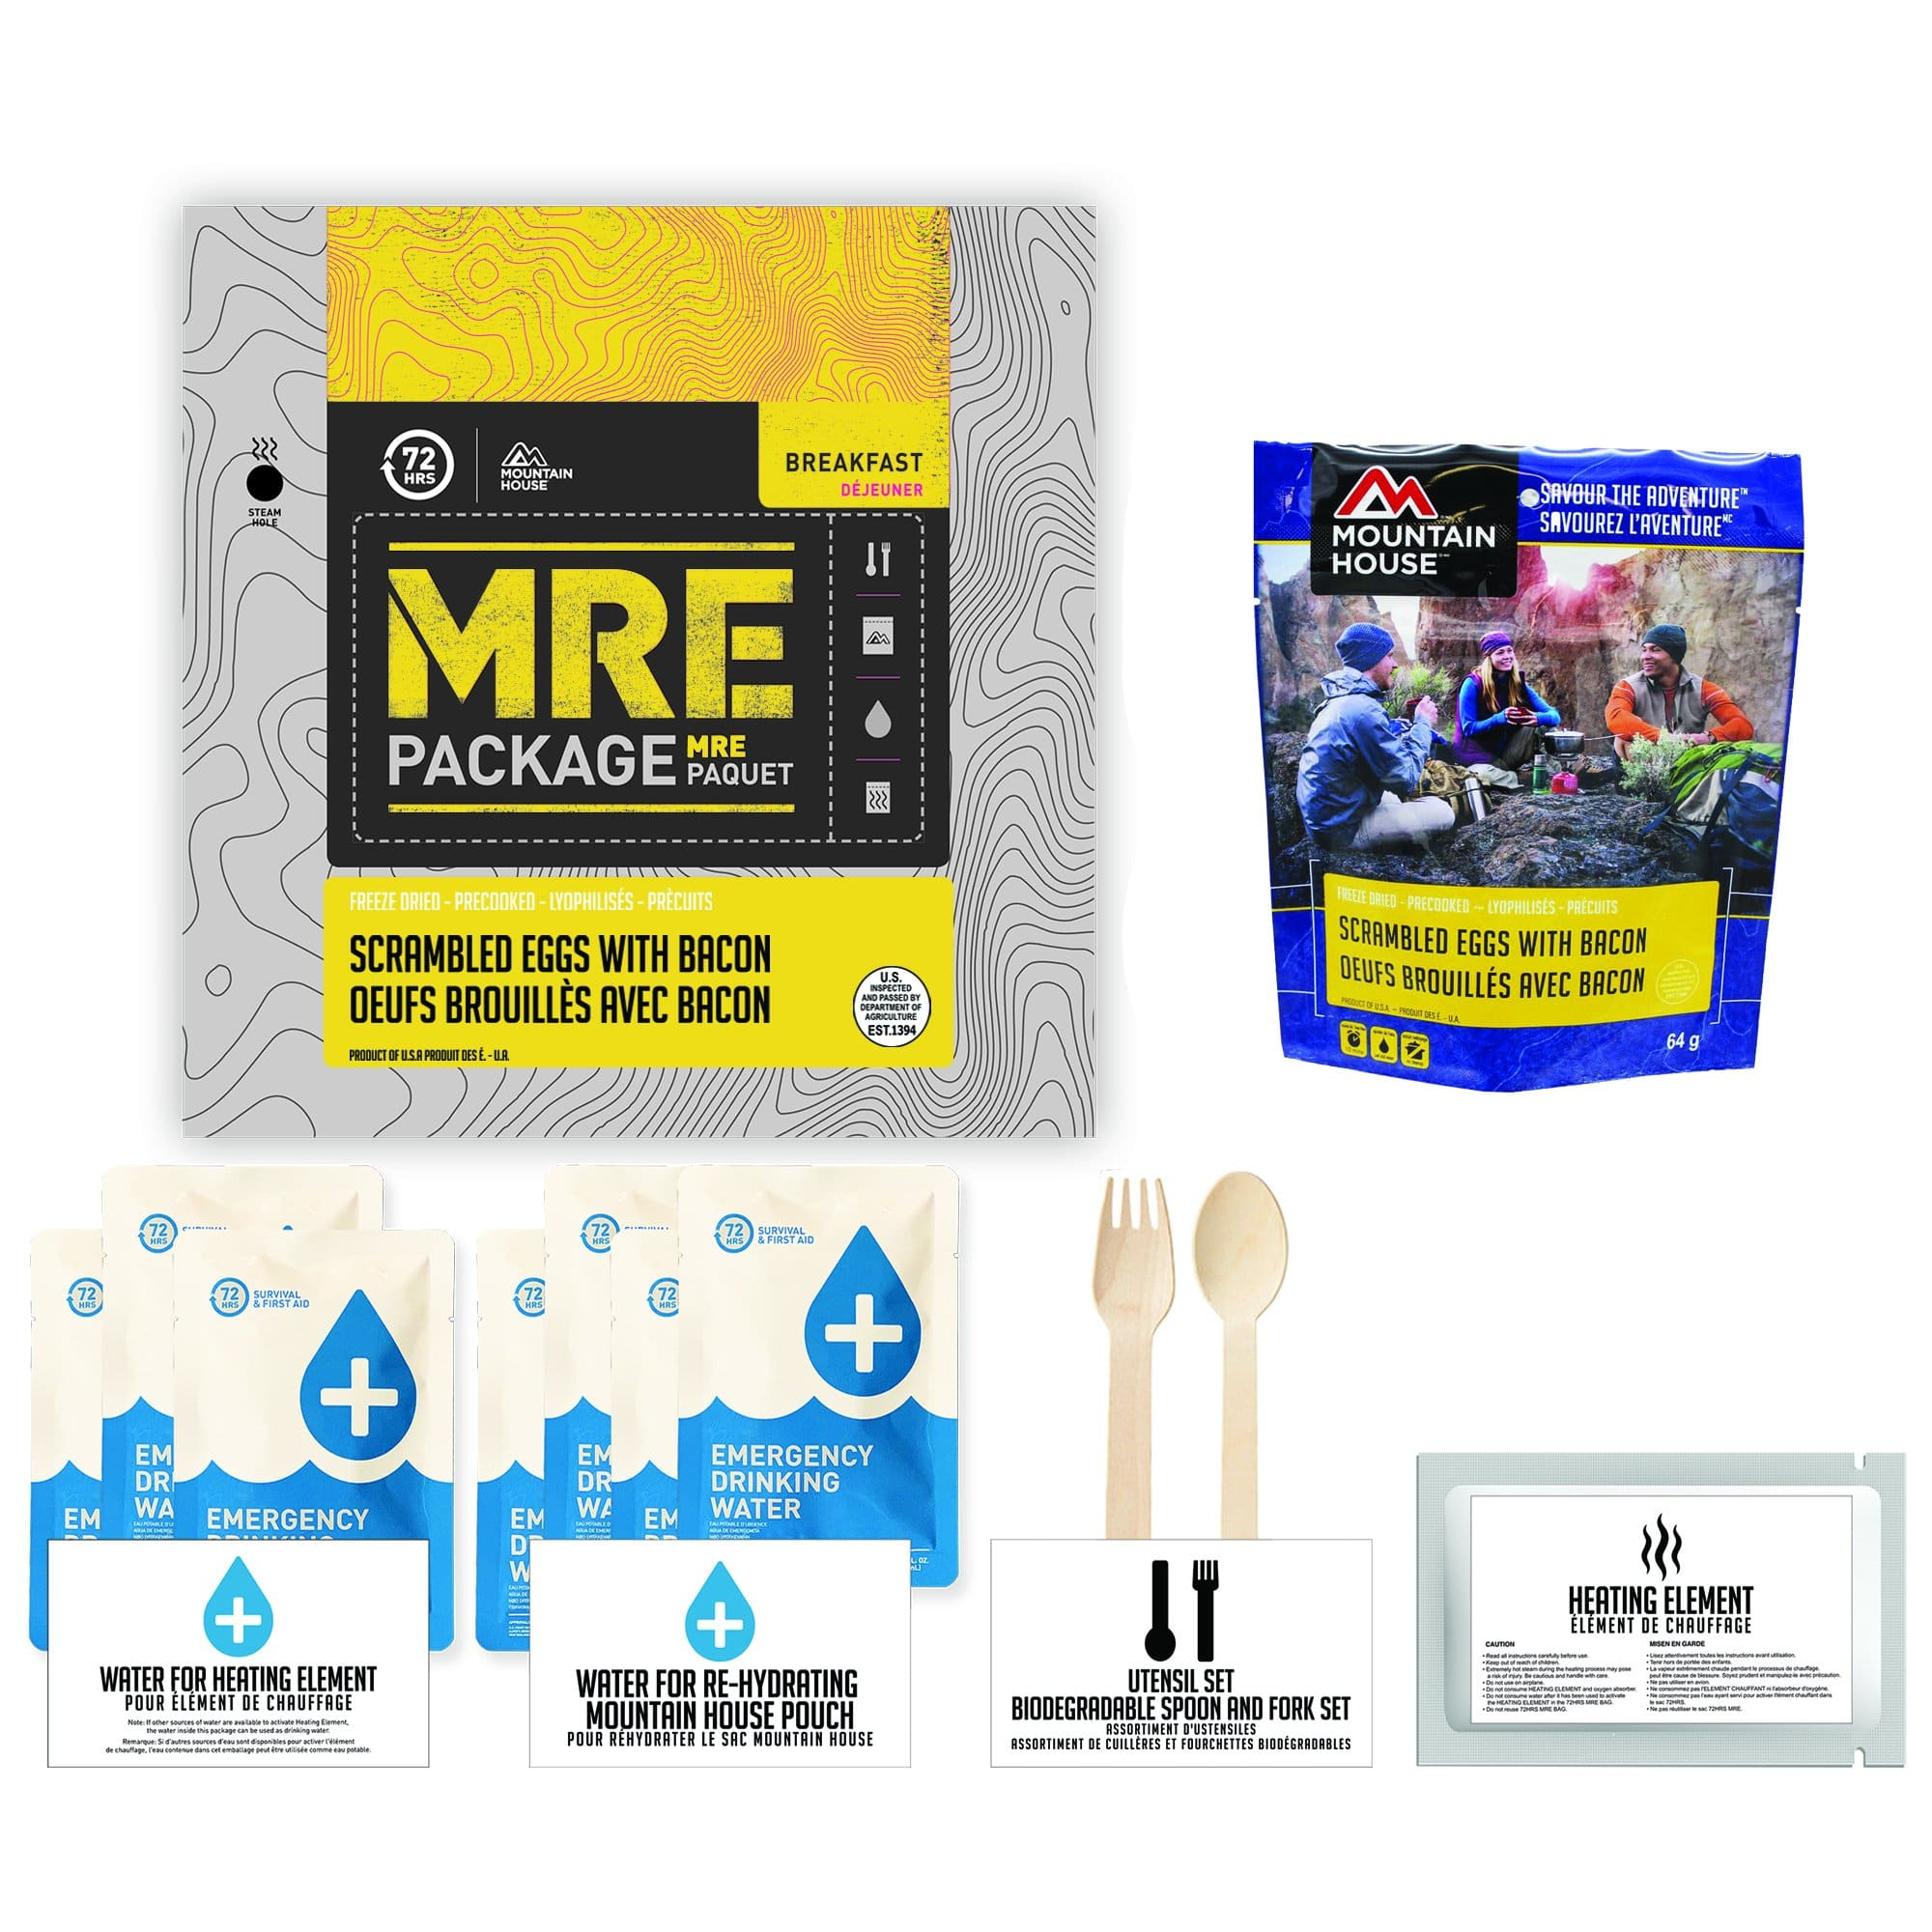 72 HOURS MRE Package Mountain House Scrambled Eggs with Bacon Pouch - Emergency Food Pack